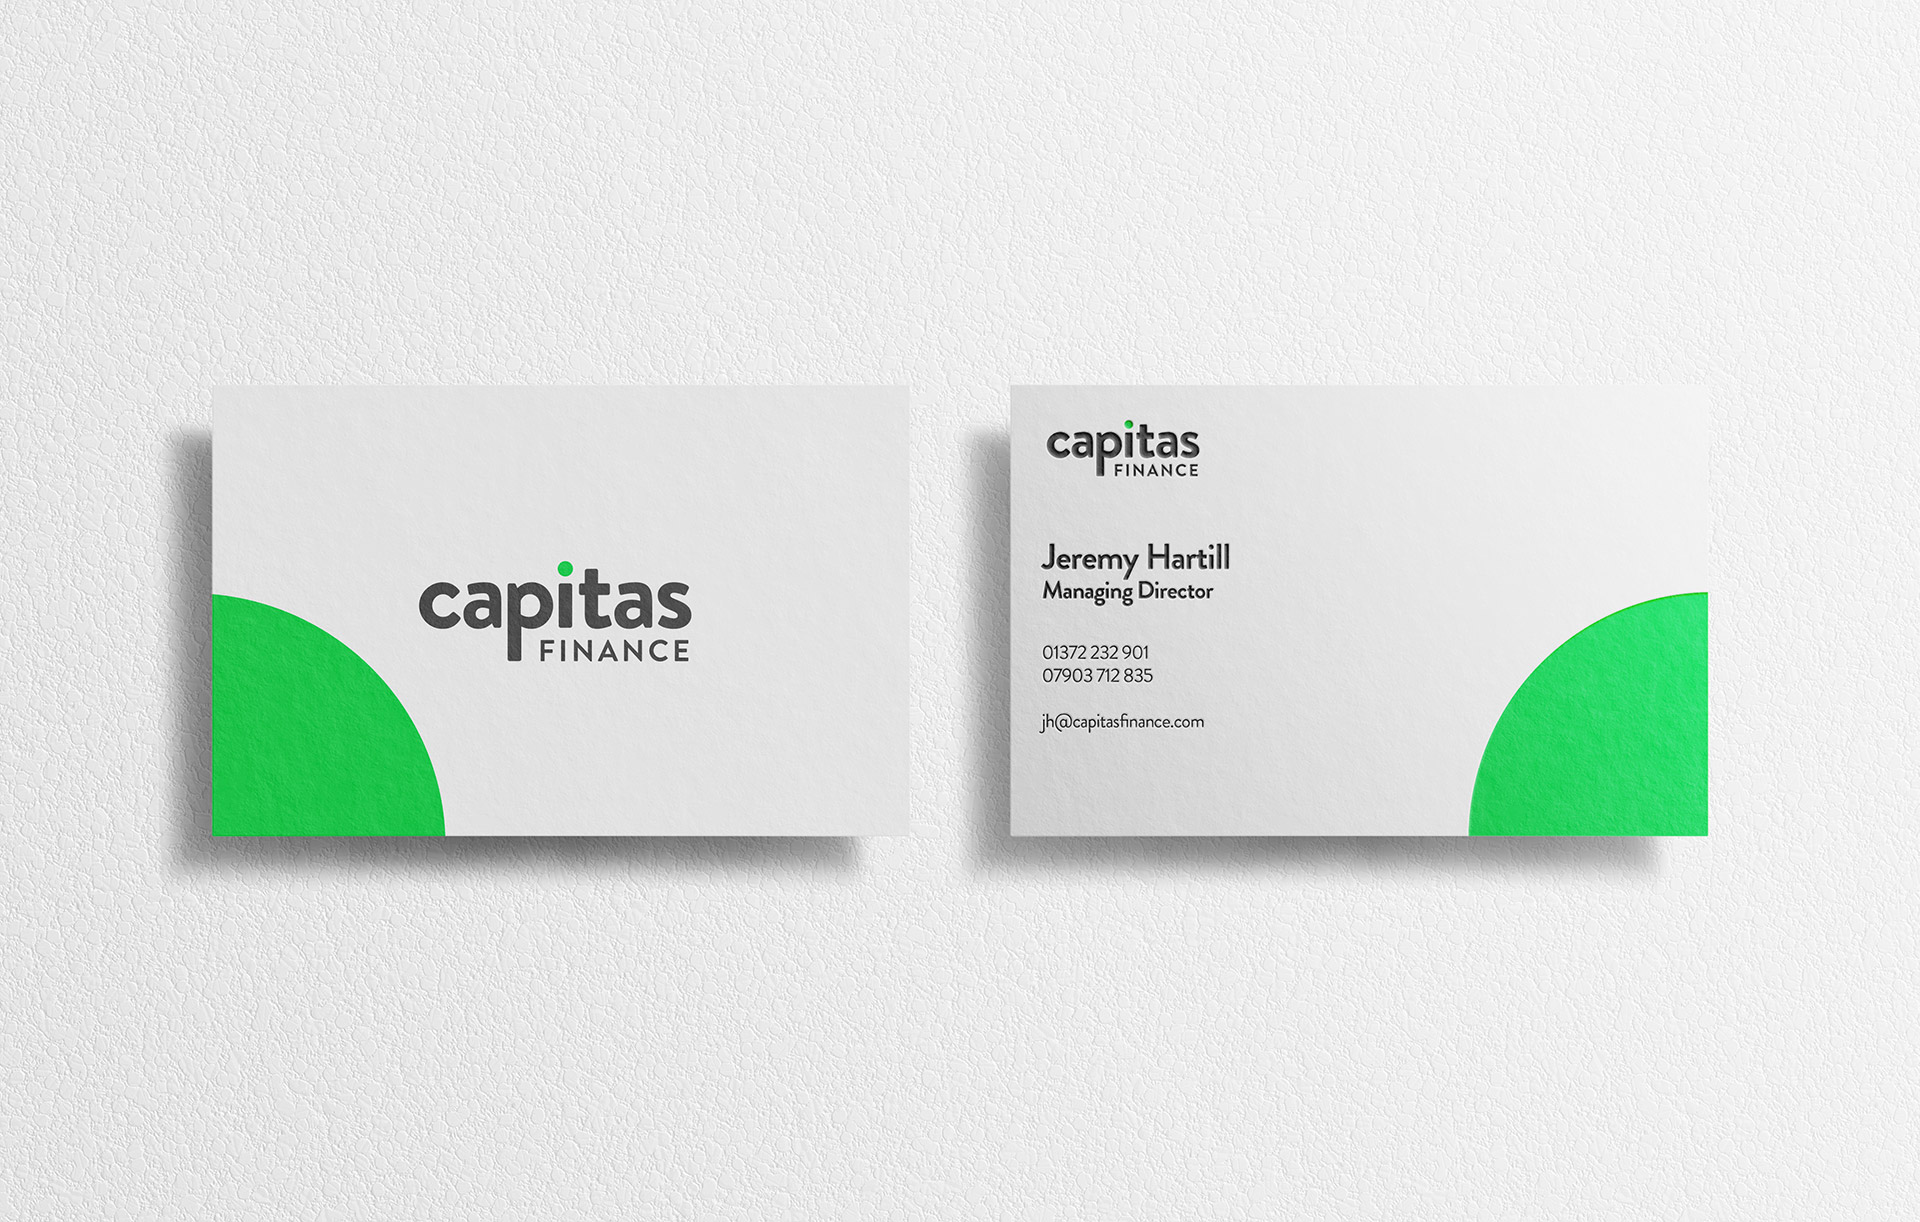 Capitas Finance - Business Card Designs